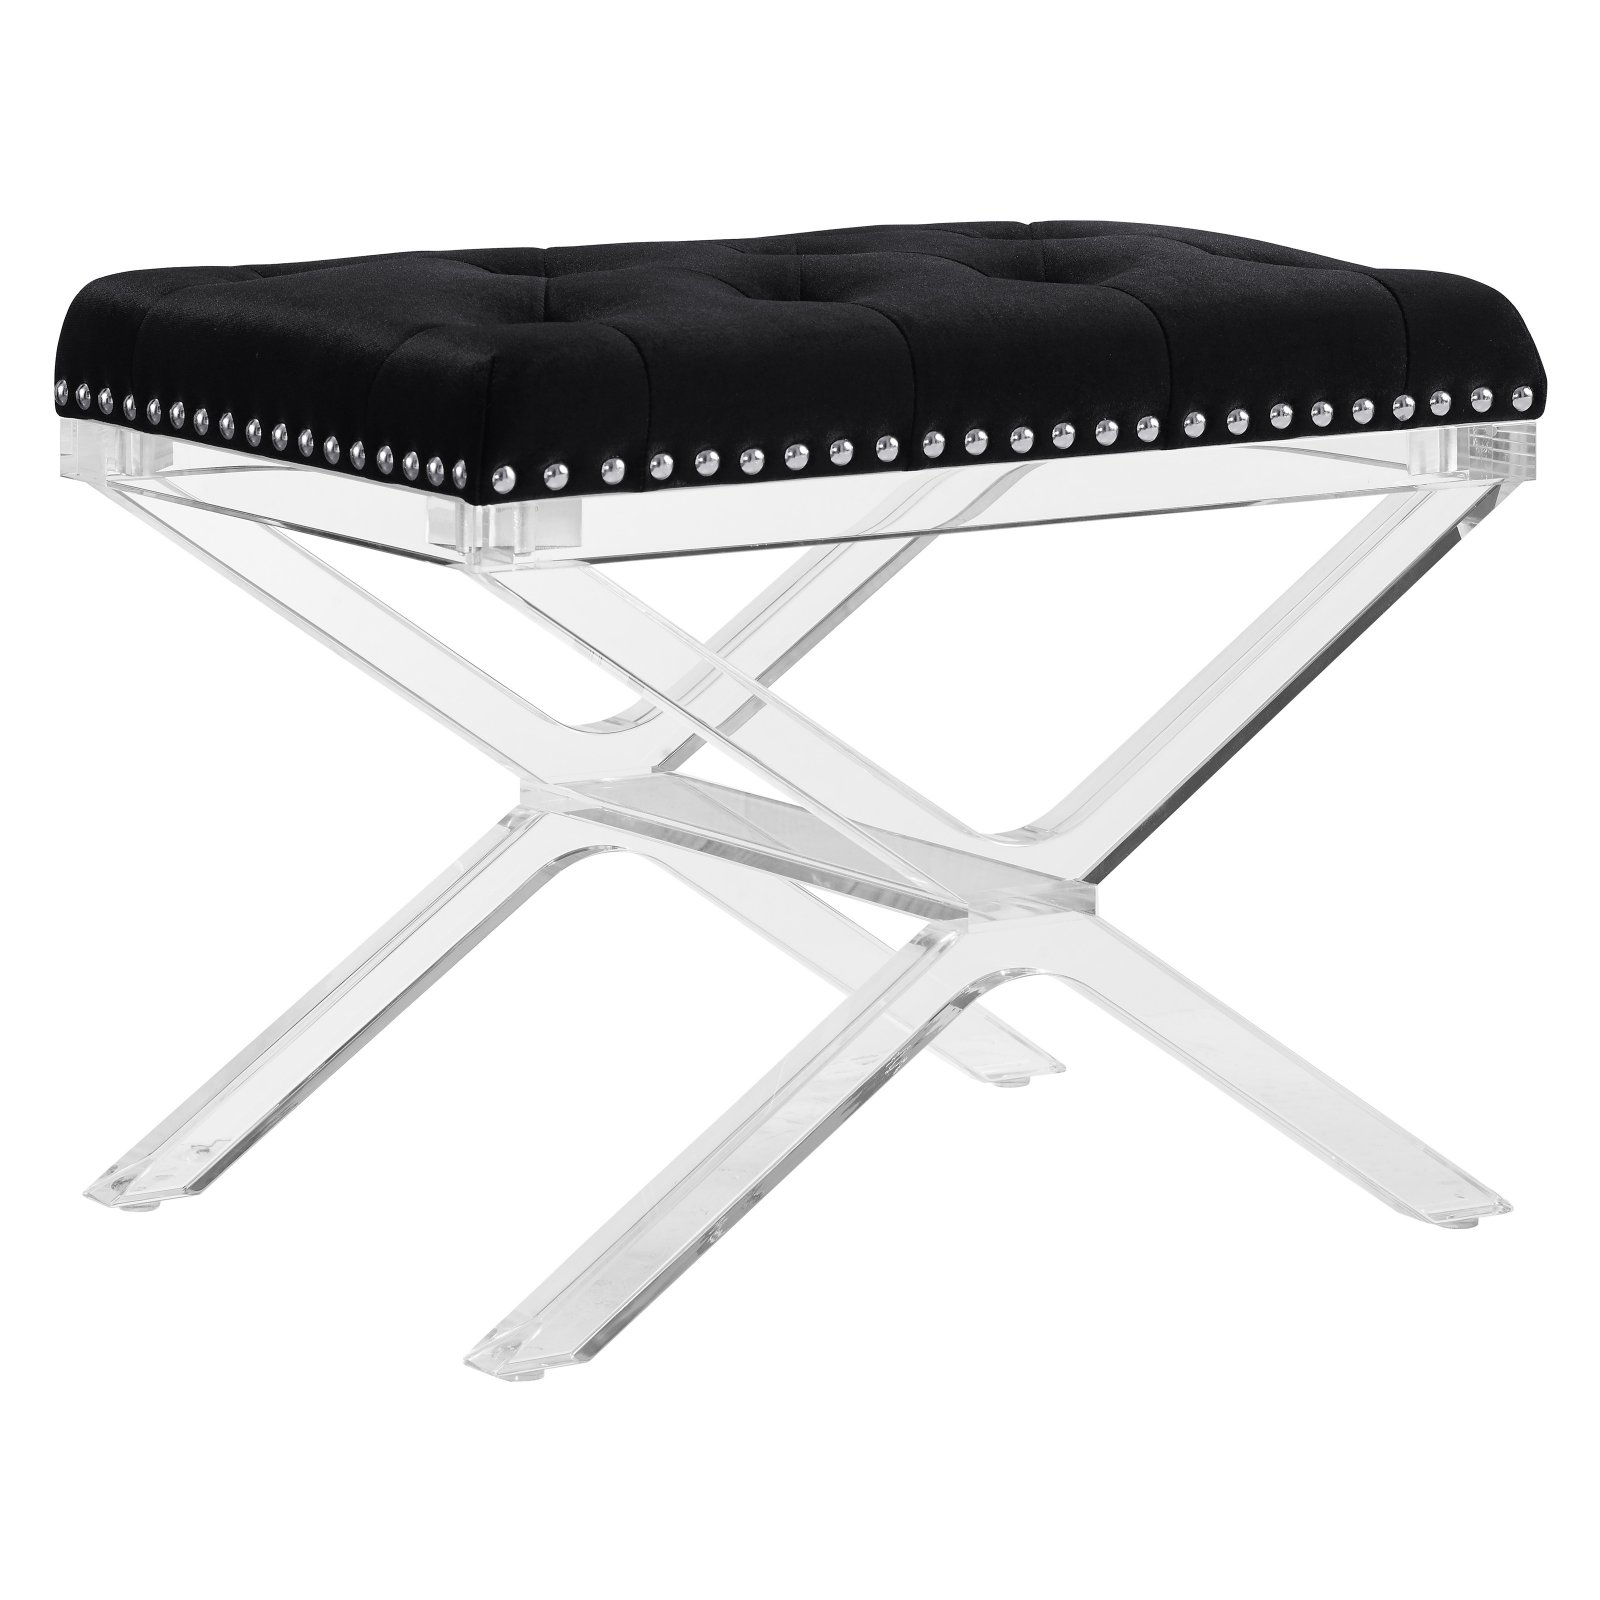 Kelsi X Base Black Vanity Bench with Acrylic Legs by Linon Home Dᅢᄅcor Products, Inc.